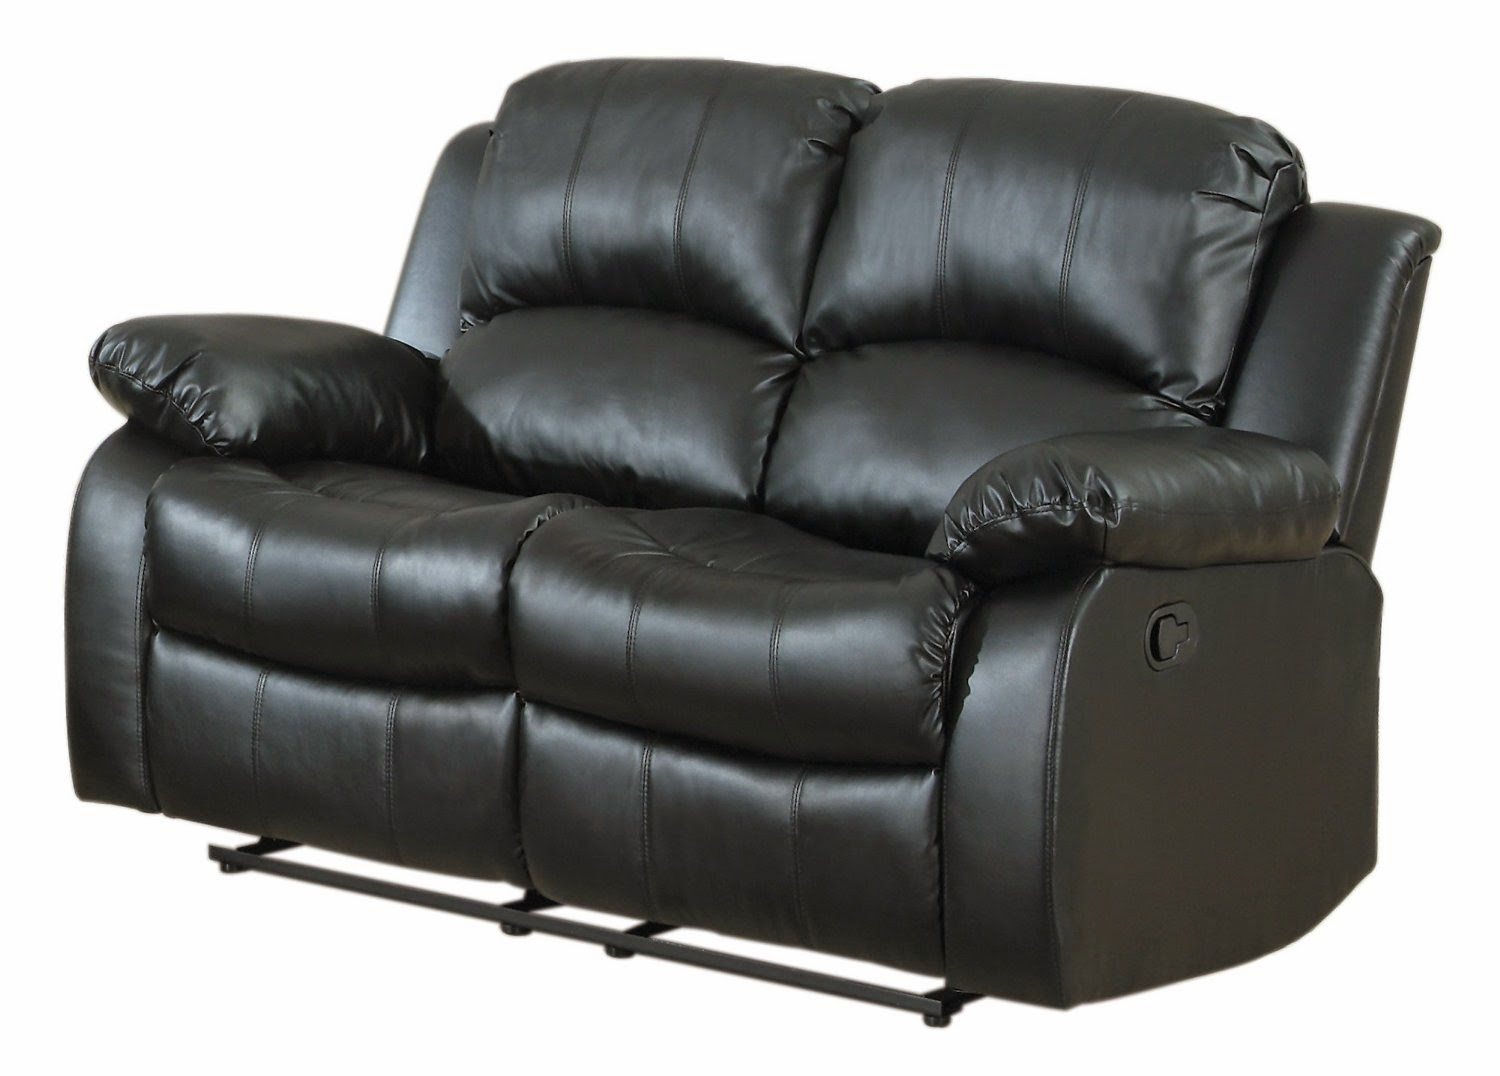 Cheap recliner sofas for sale black leather reclining sofa and loveseat Leather sofa and loveseat recliner